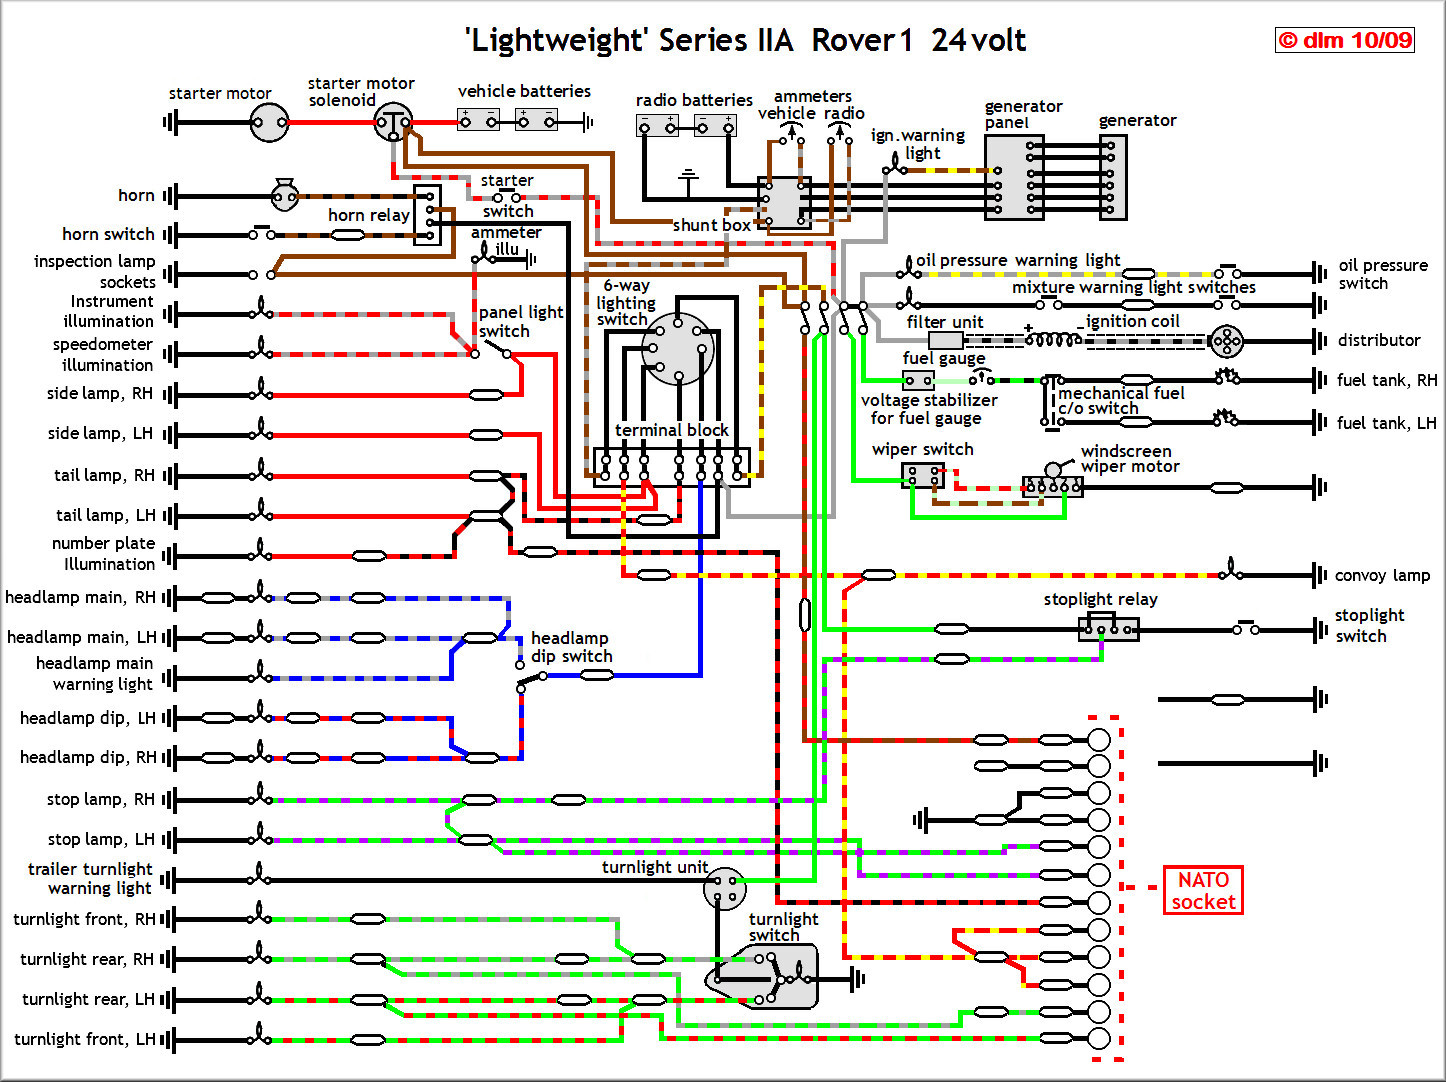 rover1 24Av land rover lr3 wiring diagram land rover belt routing \u2022 wiring Range Rover Seat Wiring Diagrams at panicattacktreatment.co